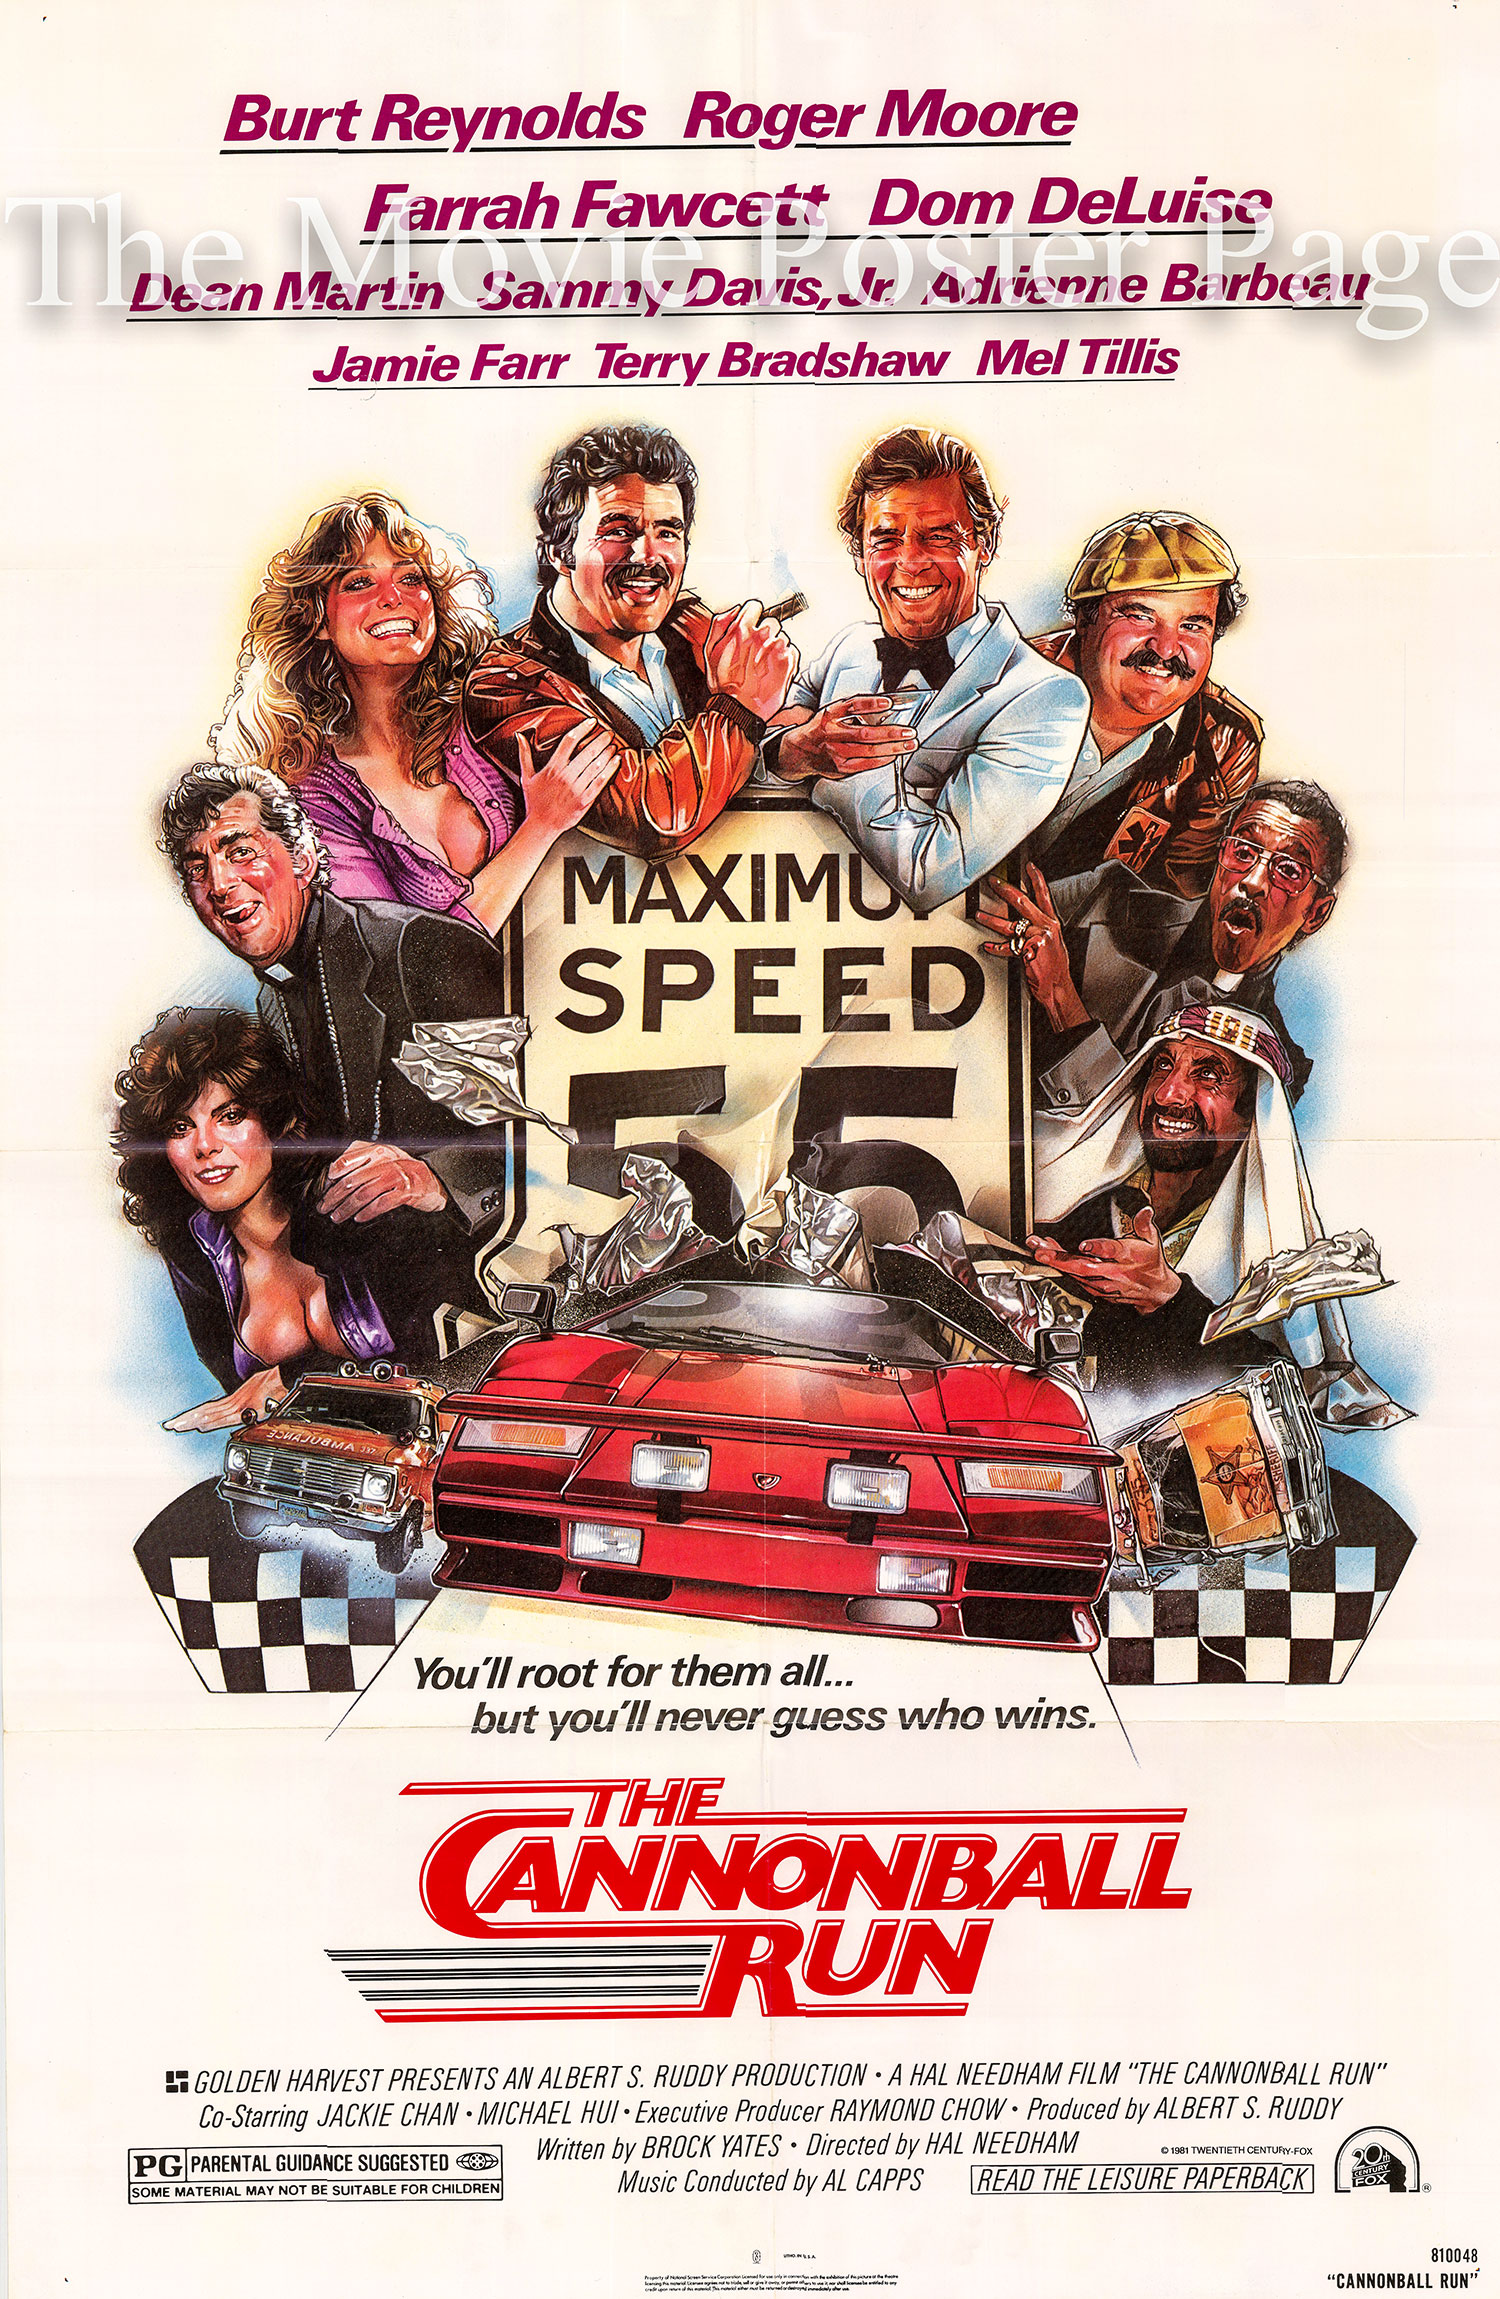 Pictured is a US one-sheet poster for the 1981 Hal Needham film Cannonball Run starring Burt Reynolds.